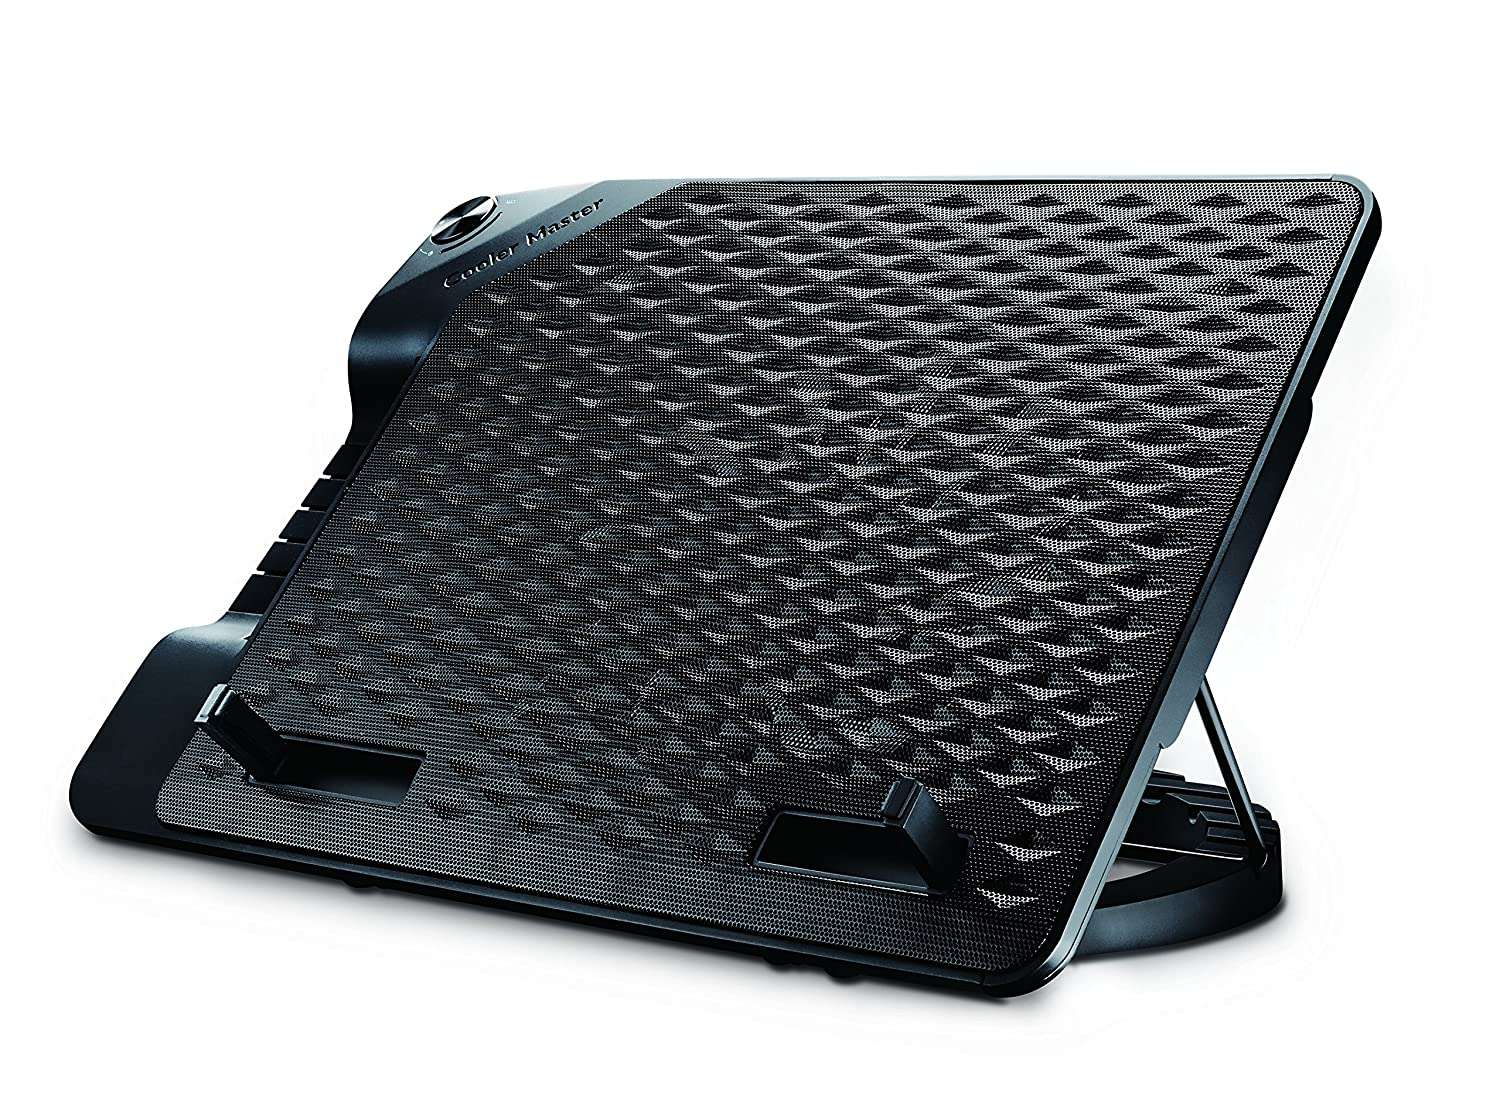 Laptop Cooling Pad Black Friday Deals 2019